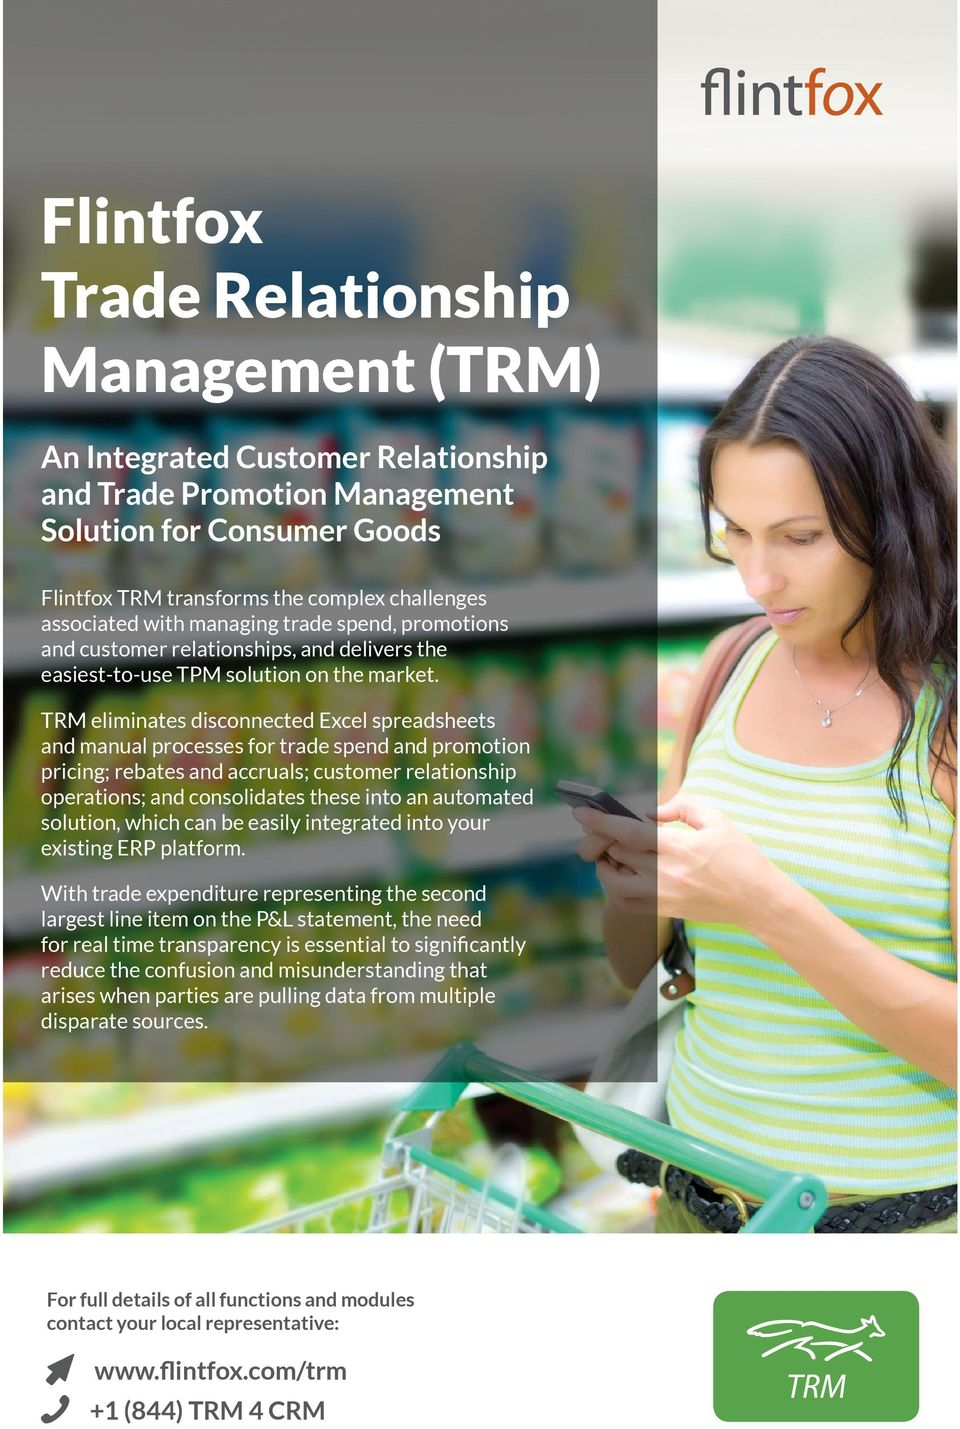 TRM eliminates disconnected Excel spreadsheets and manual processes for trade spend and promotion pricing; rebates and accruals; customer relationship operations; and consolidates these into an